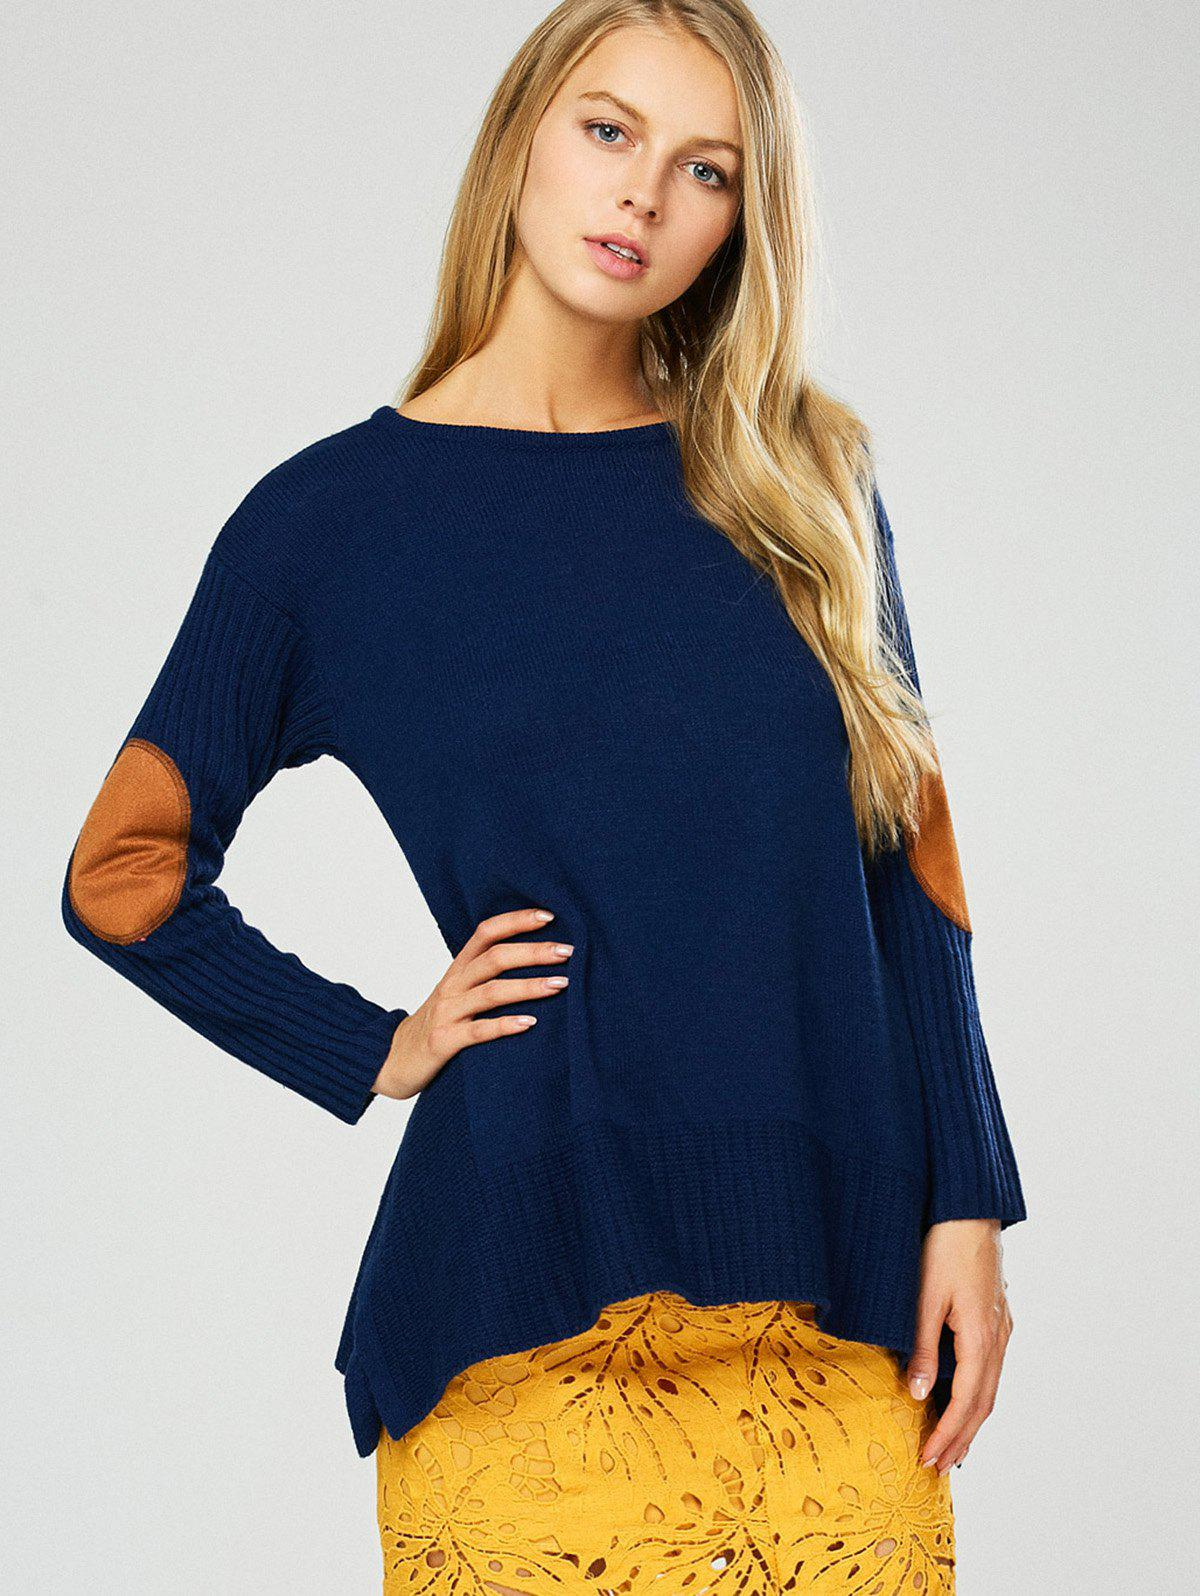 Elbow Patch Asymmetric Pullover Sweater asymmetric pullover sweater